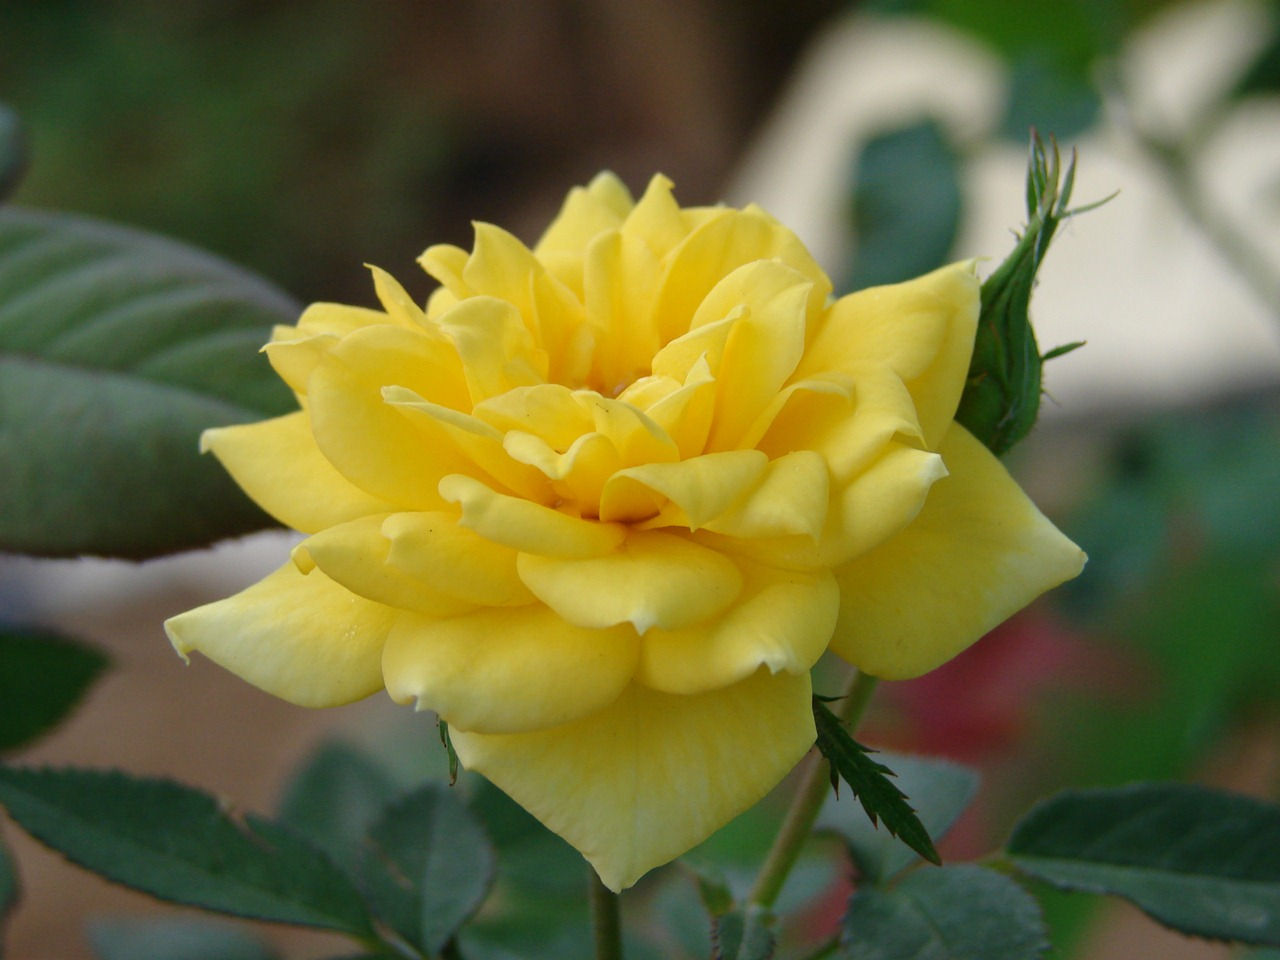 Google Image, Yellow Rose, Image Results, Yellow Flower